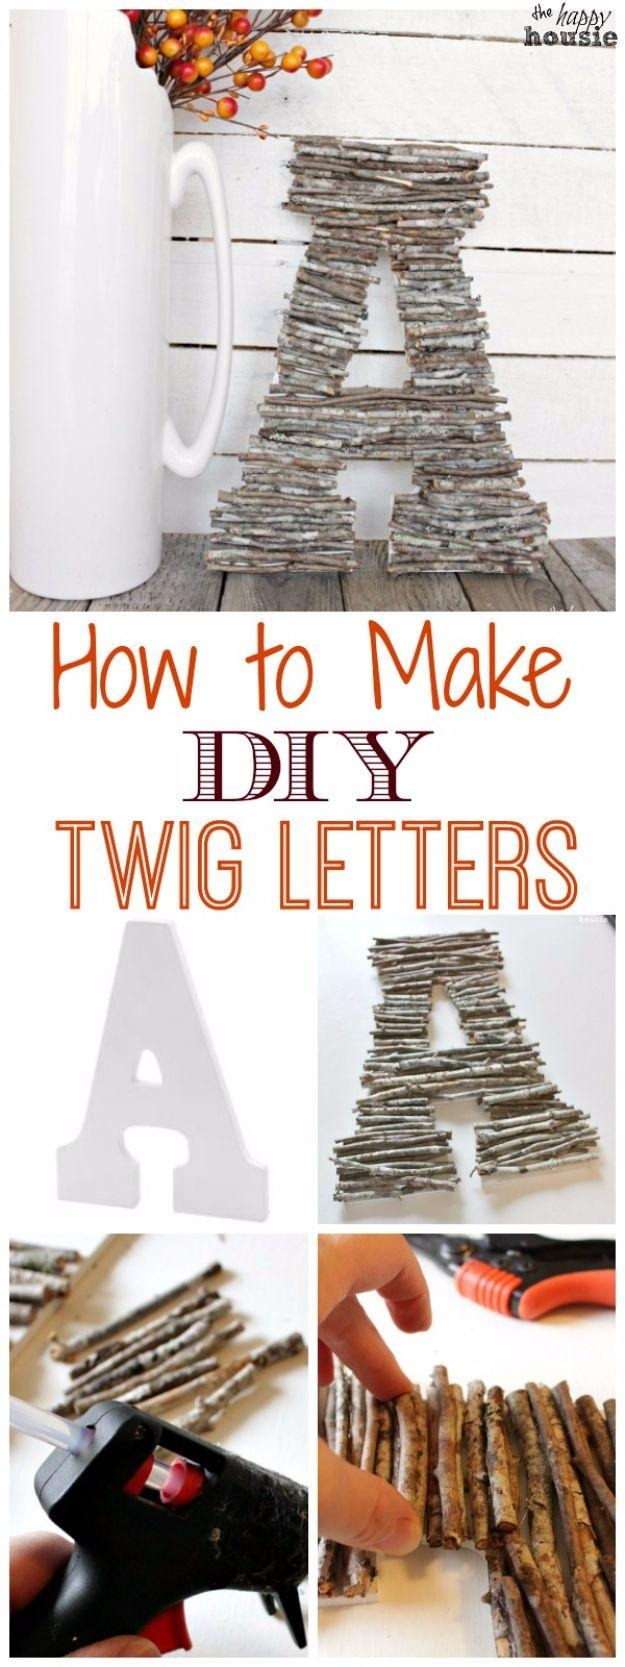 Get 20+ Decorative Wall Letters Ideas On Pinterest Without Signing Pertaining To Decorative Initials Wall Art (View 5 of 20)